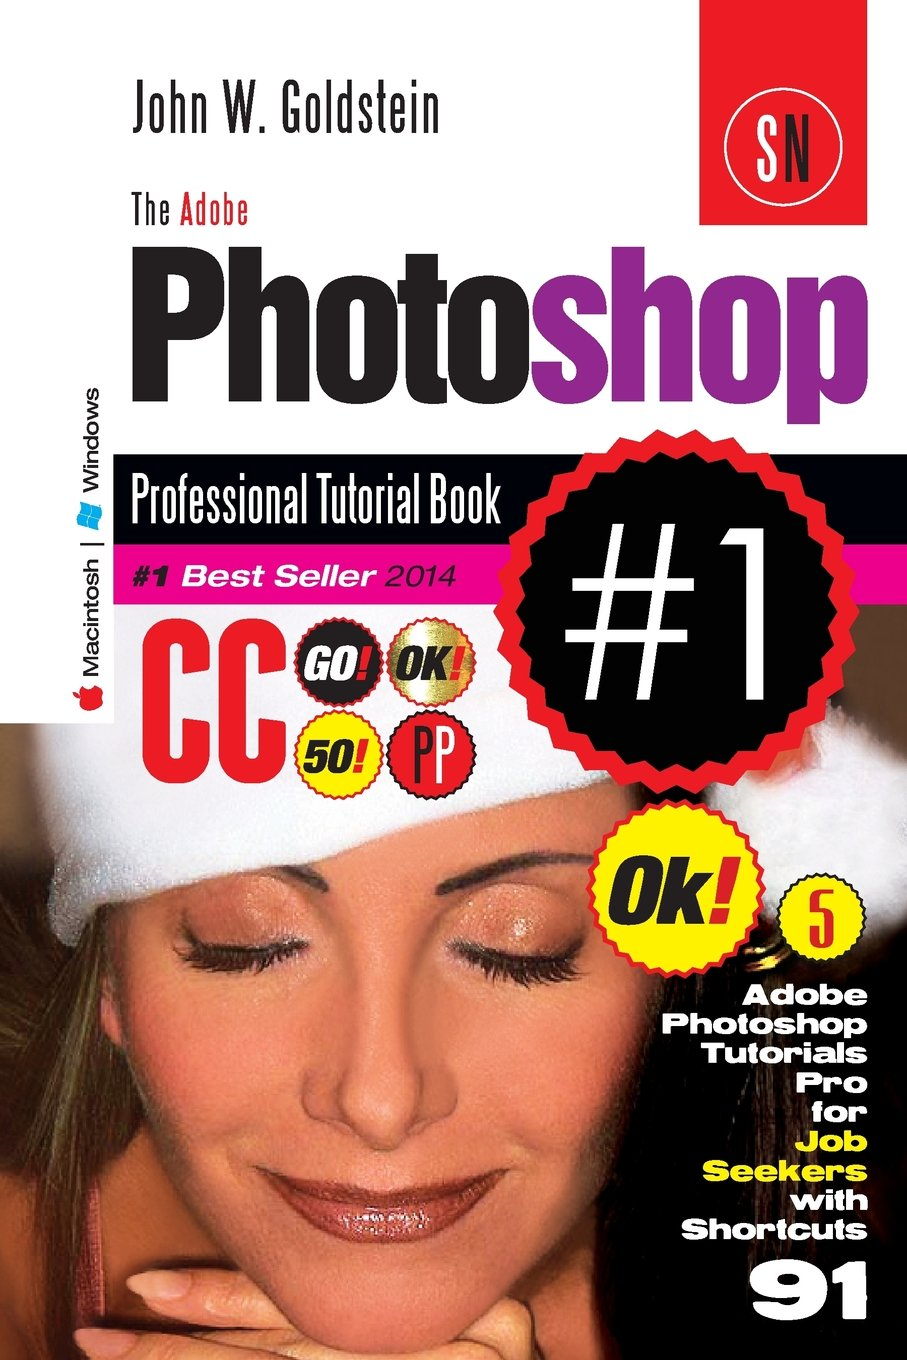 The adobe photoshop cc professional tutorial book 91 macintosh the adobe photoshop cc professional tutorial book 91 macintoshwindows adobe photoshop tutorials pro for job seekers with shortcuts photoshop pro volume baditri Gallery